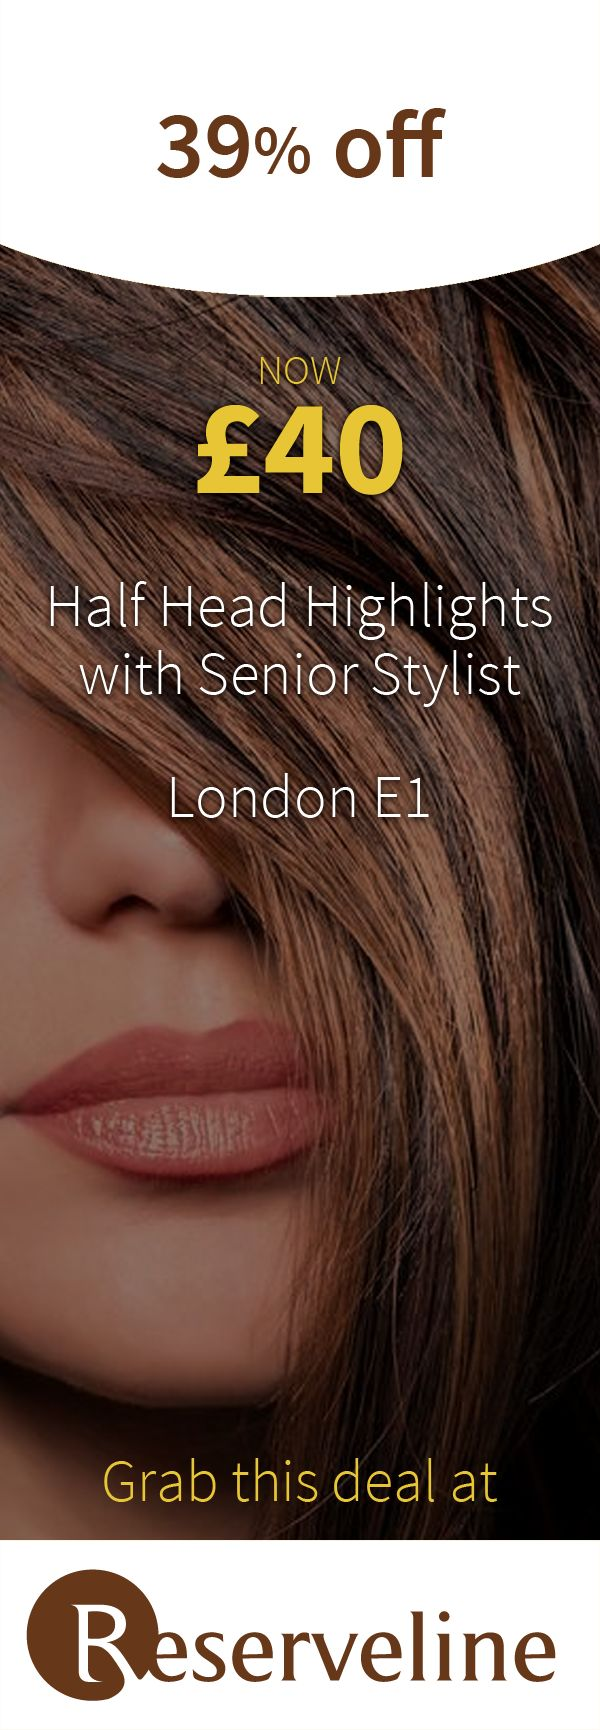 Get a morning appointment to save £25 on half-head highlights! #Reserveline #Beauty #Deals #Coupons #Vouchers